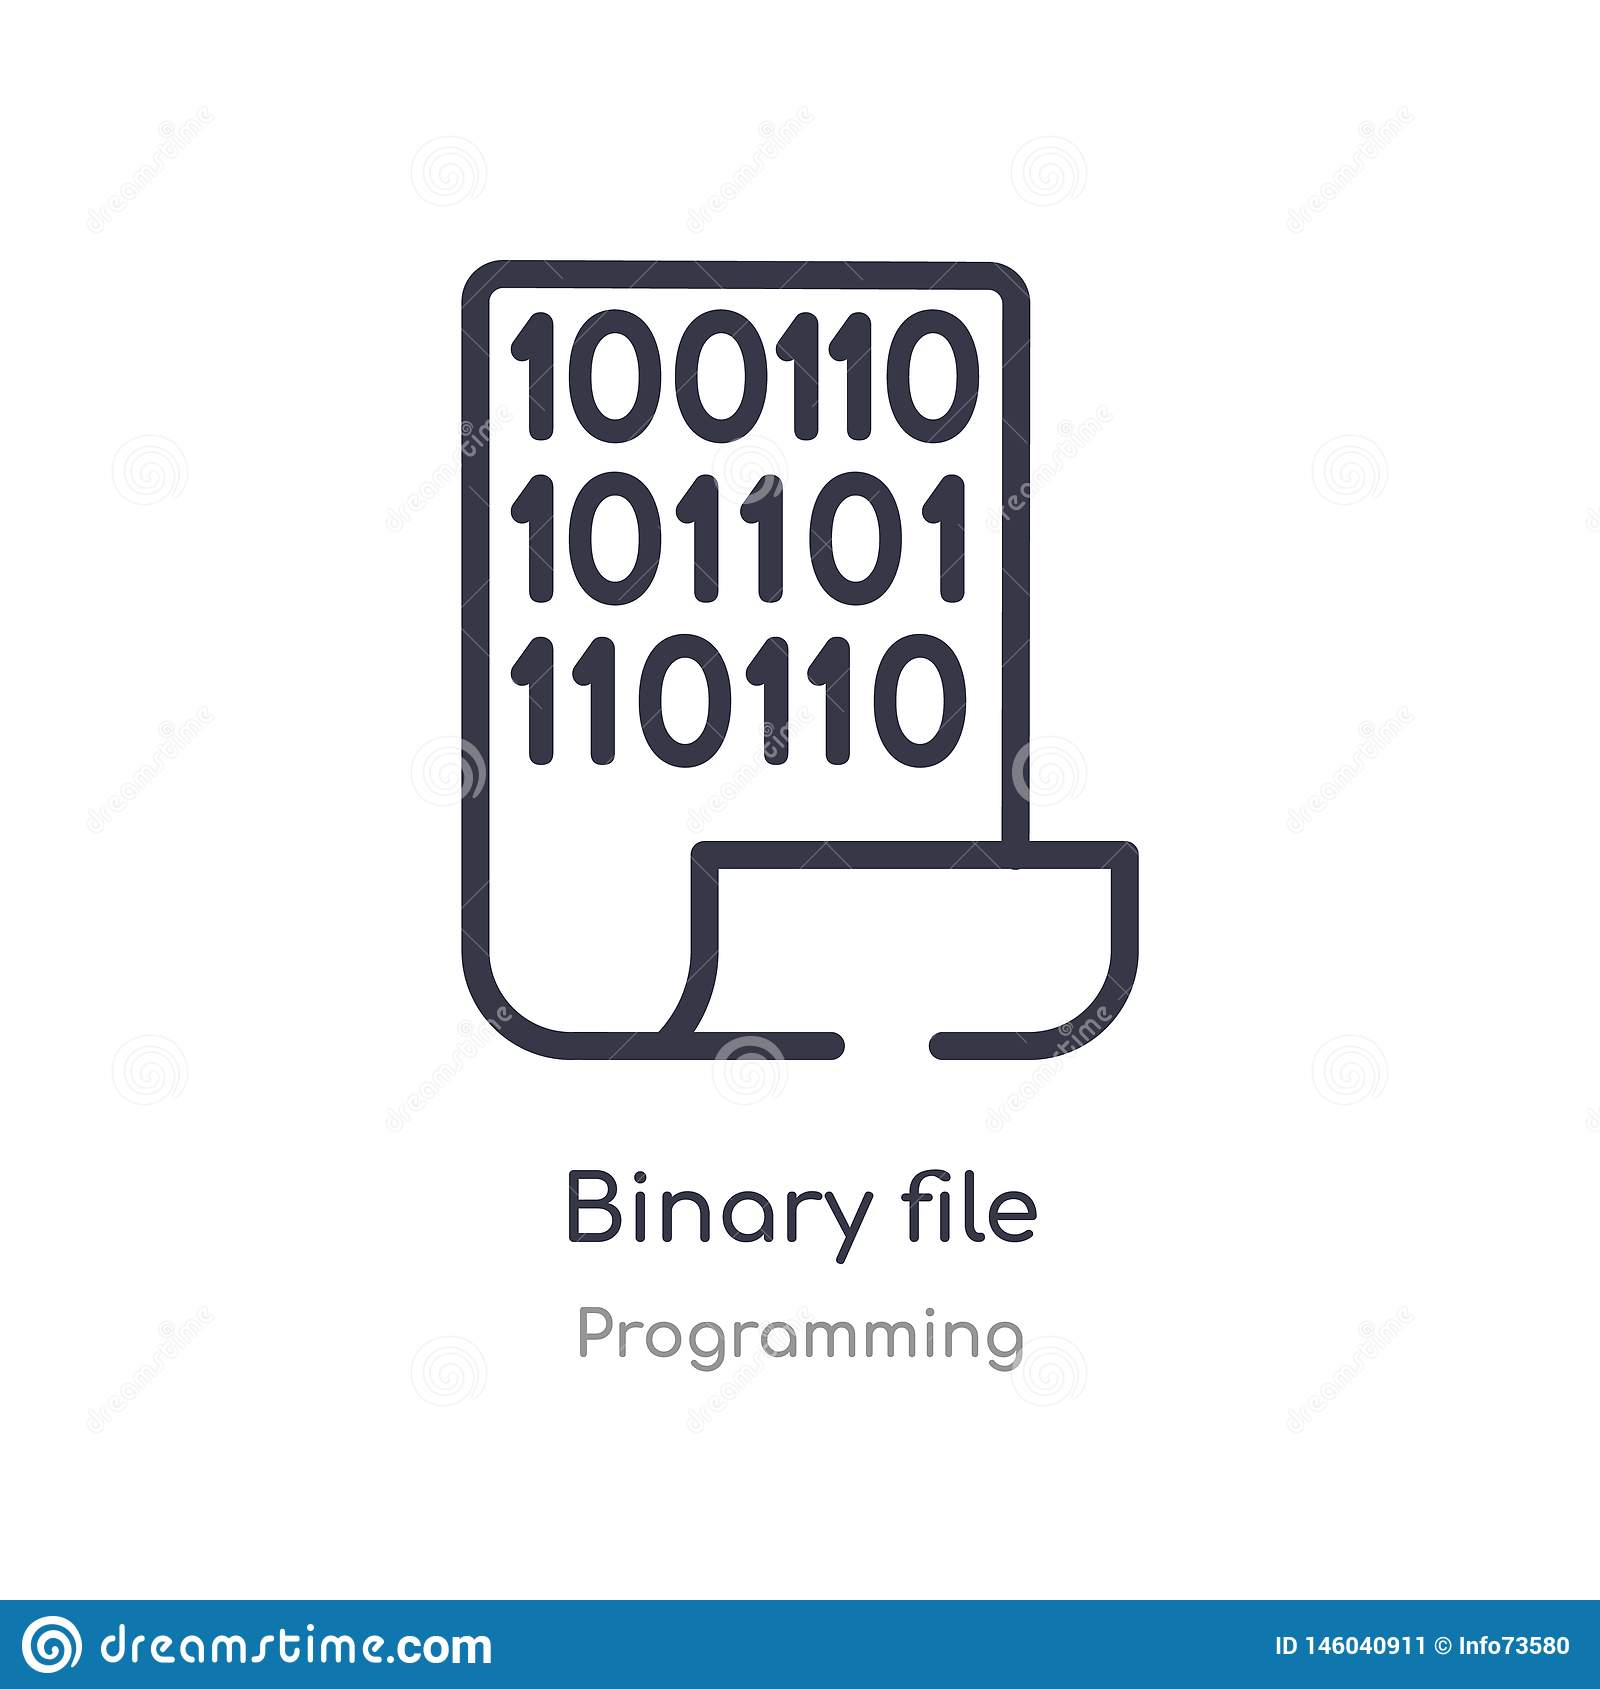 binary file outline icon. isolated line vector illustration from programming collection. editable thin stroke binary file icon on